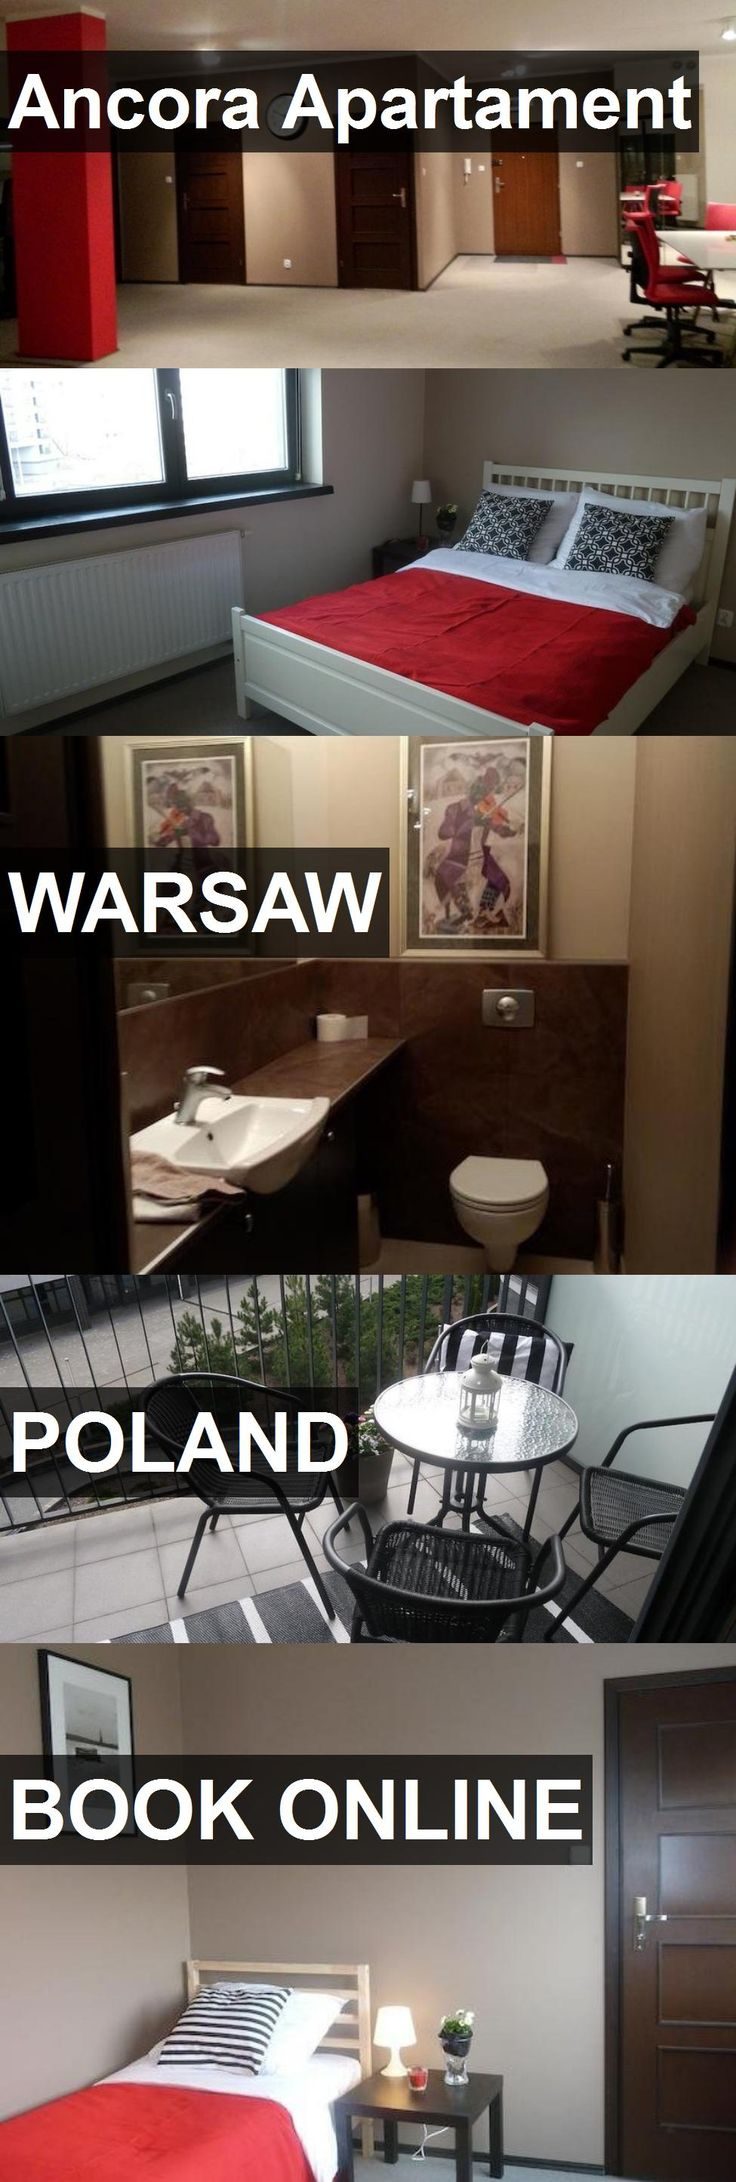 Hotel Ancora Apartament in Warsaw, Poland. For more information, photos, reviews and best prices please follow the link. #Poland #Warsaw #travel #vacation #hotel